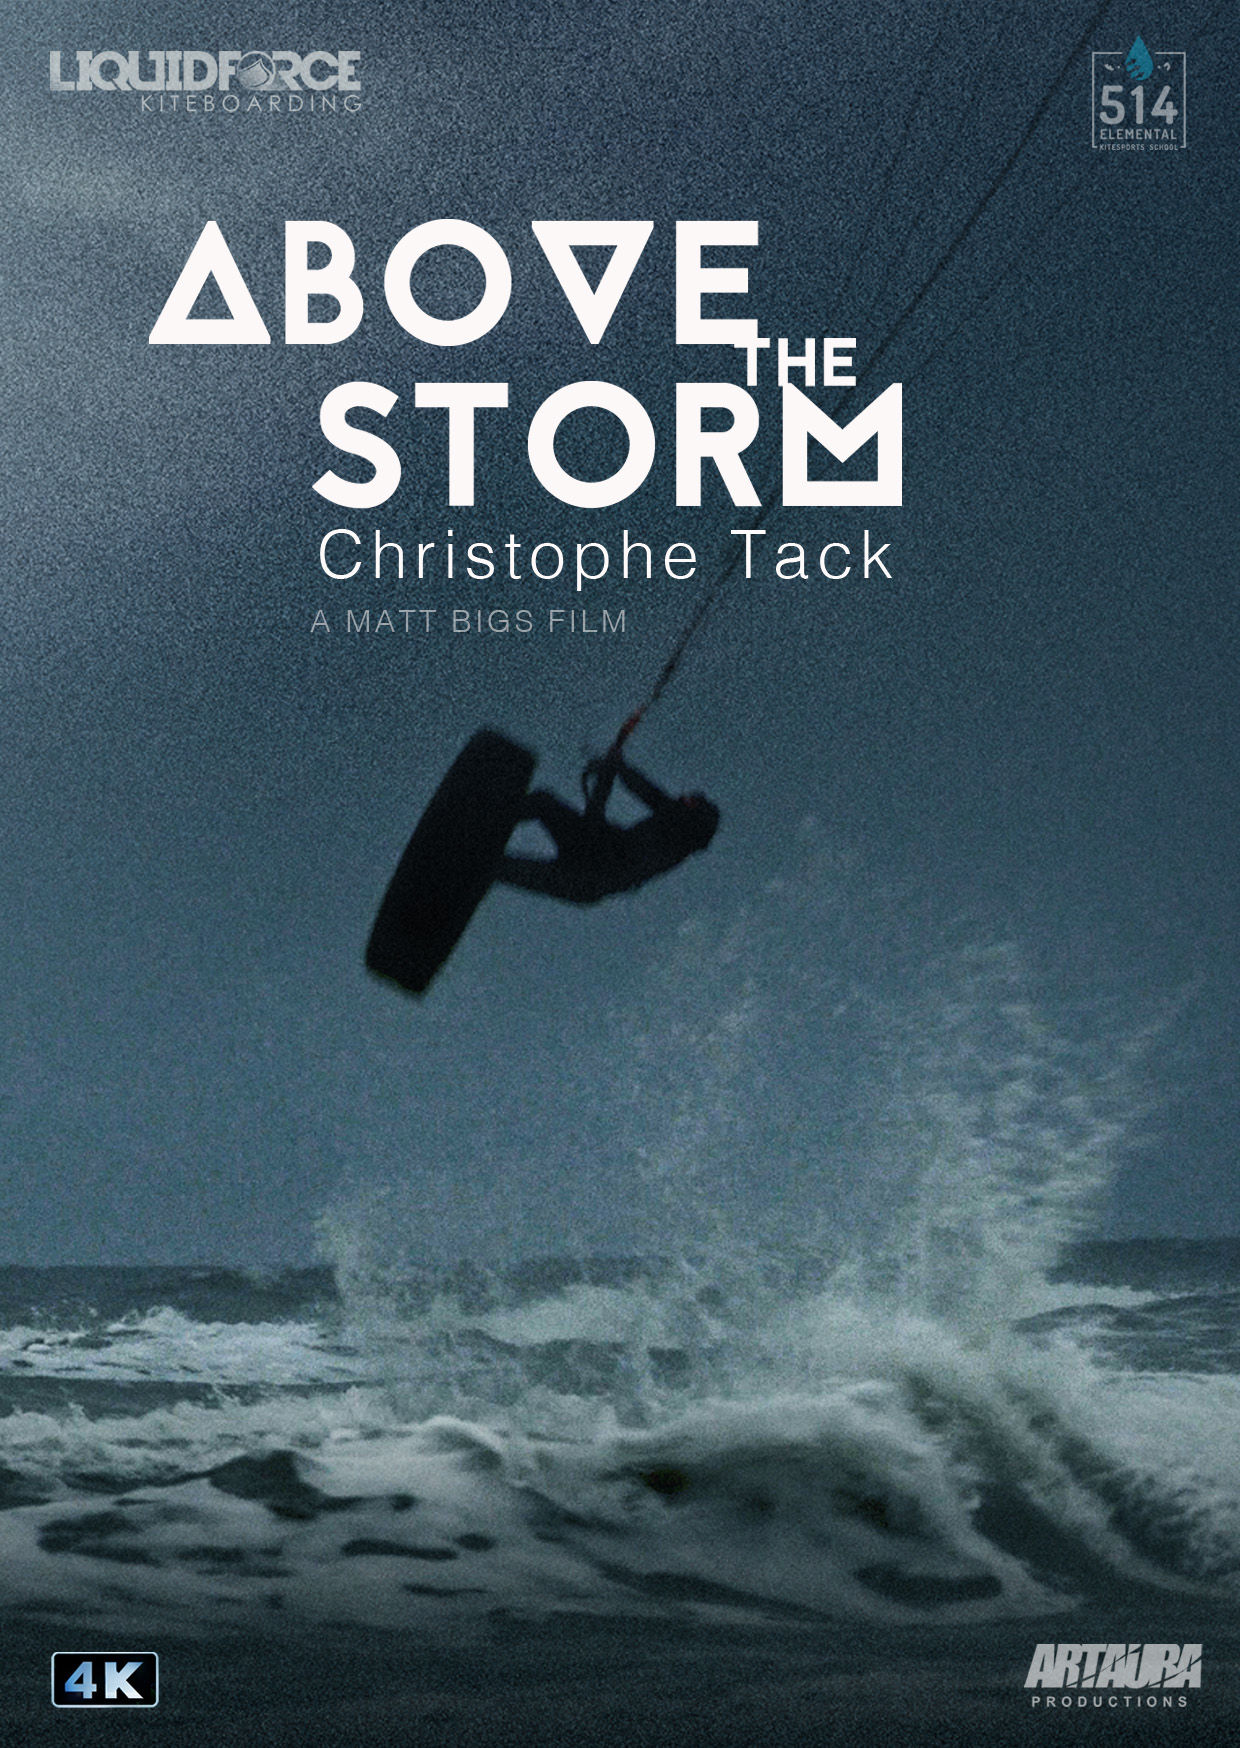 ABOVE THE STORM | Christophe Tack